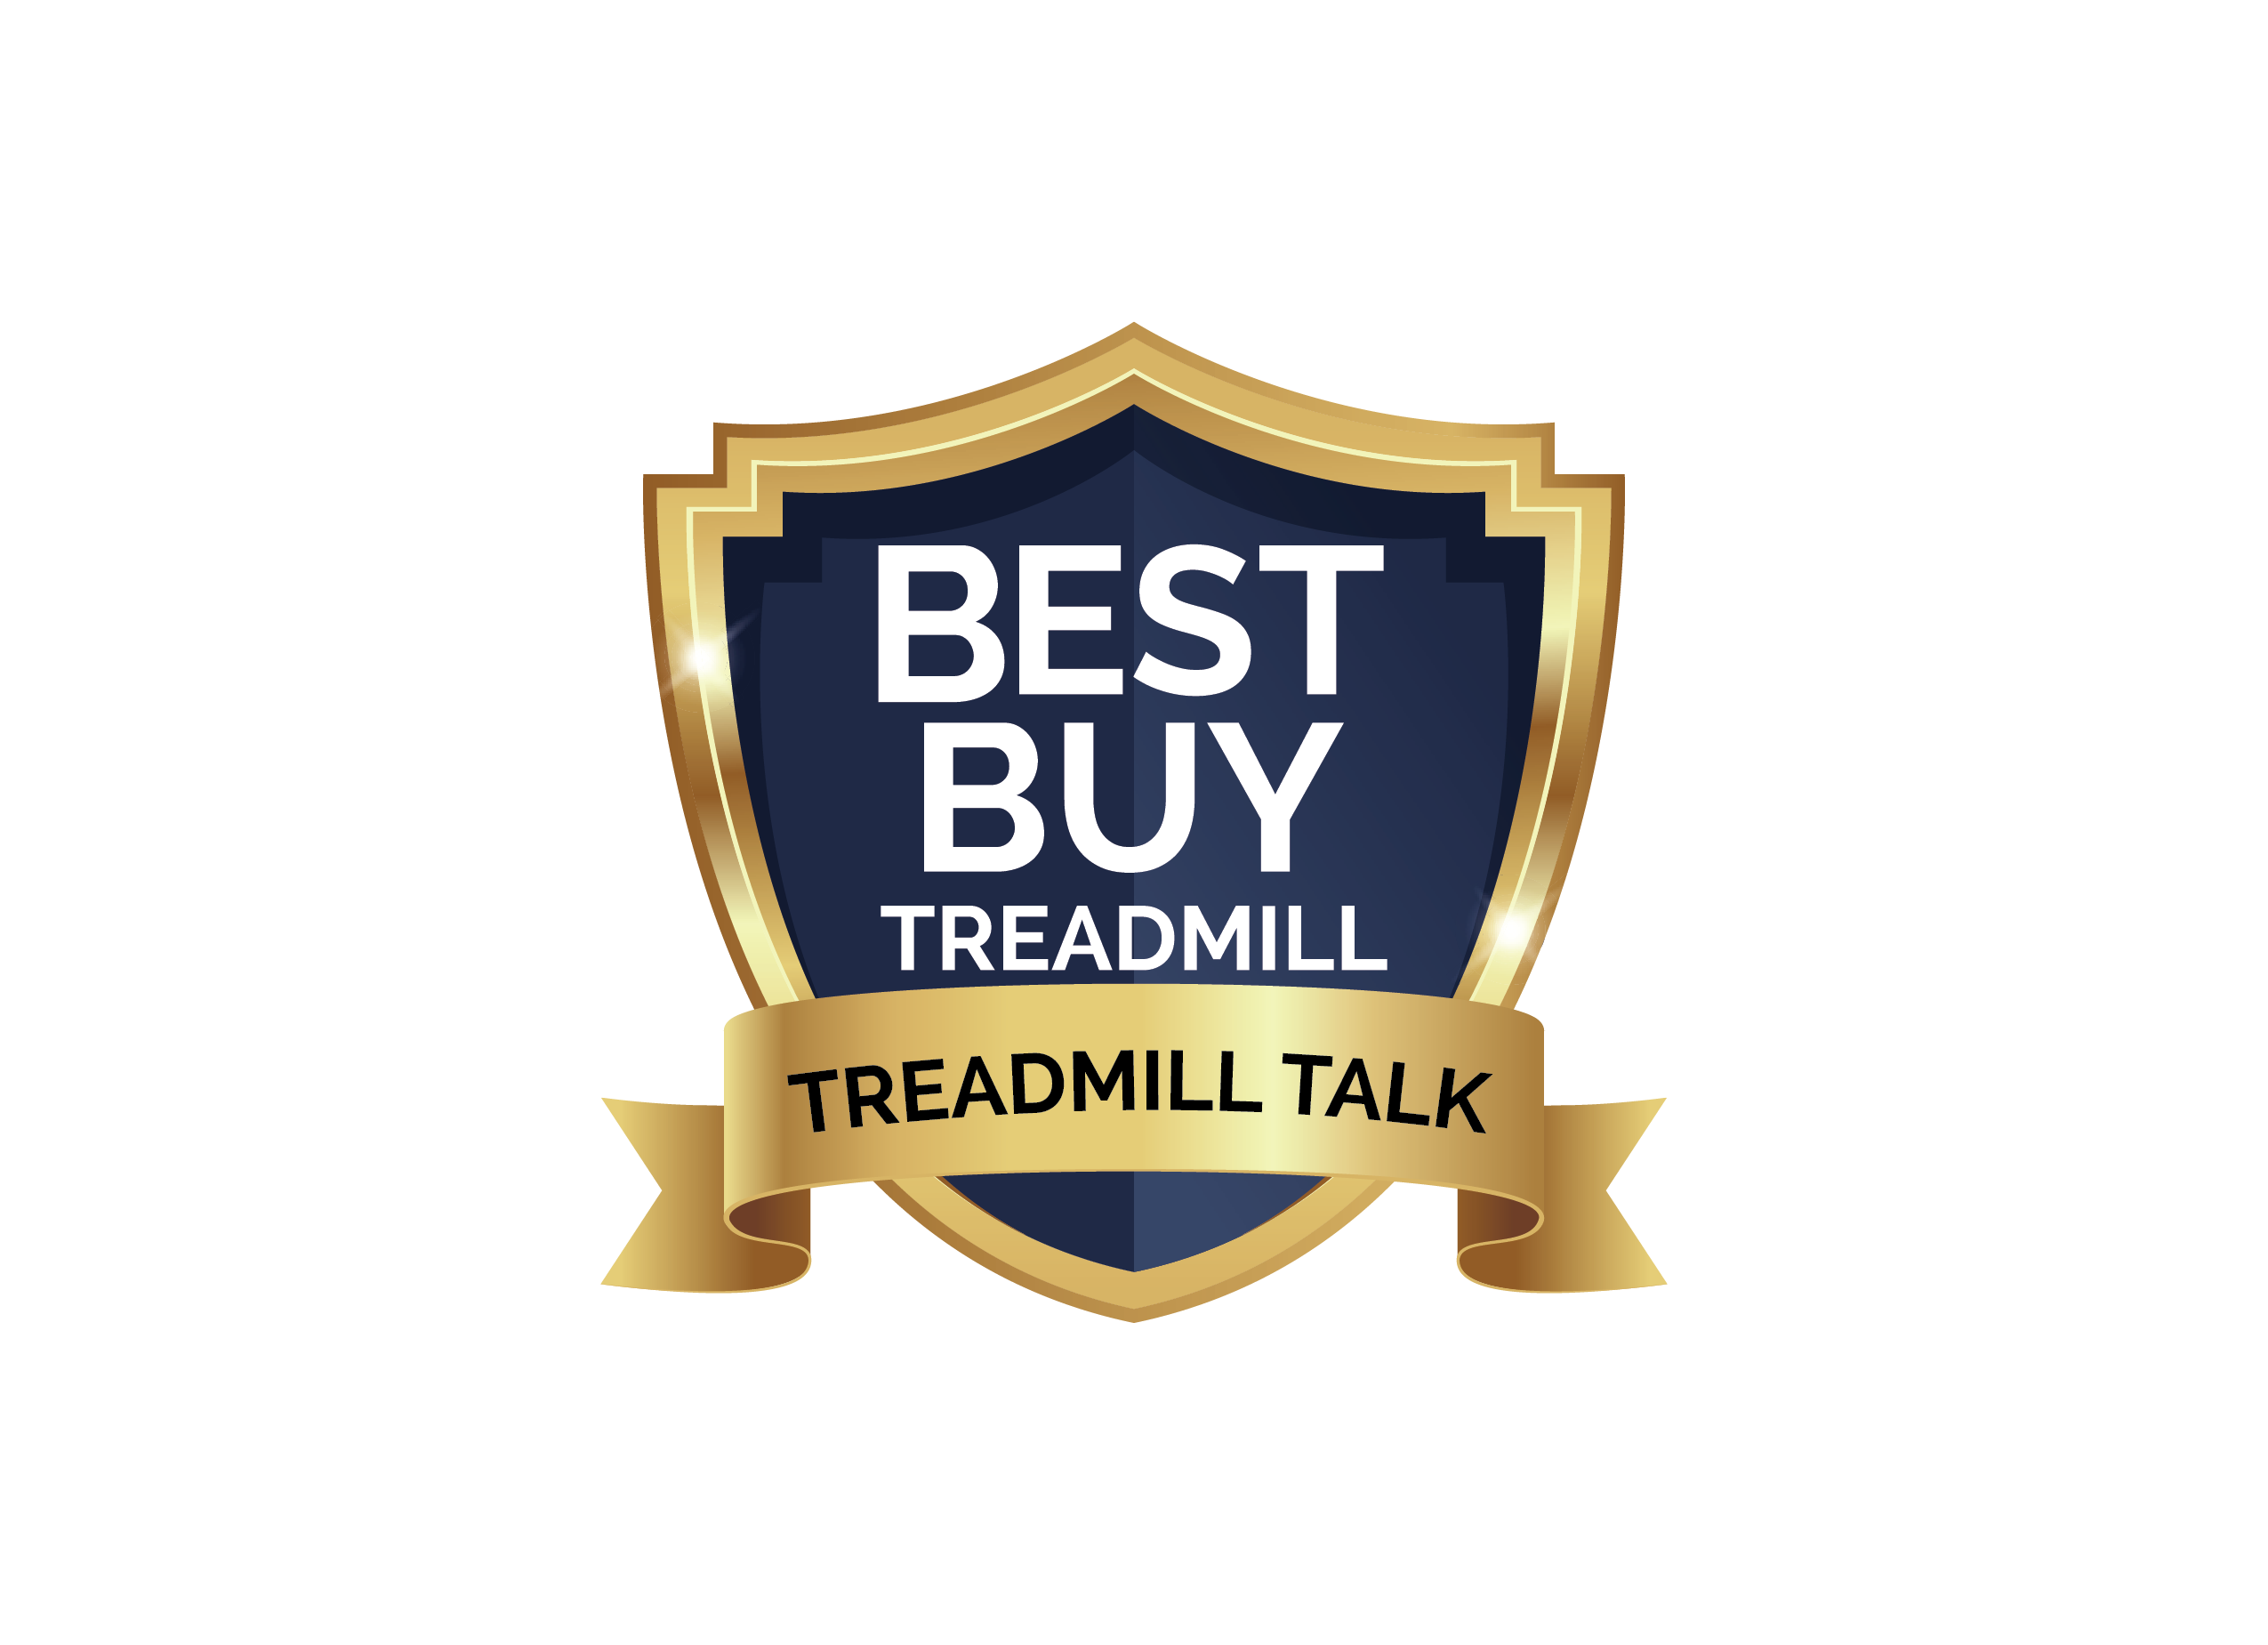 Treadmill Talk Best Buy Award